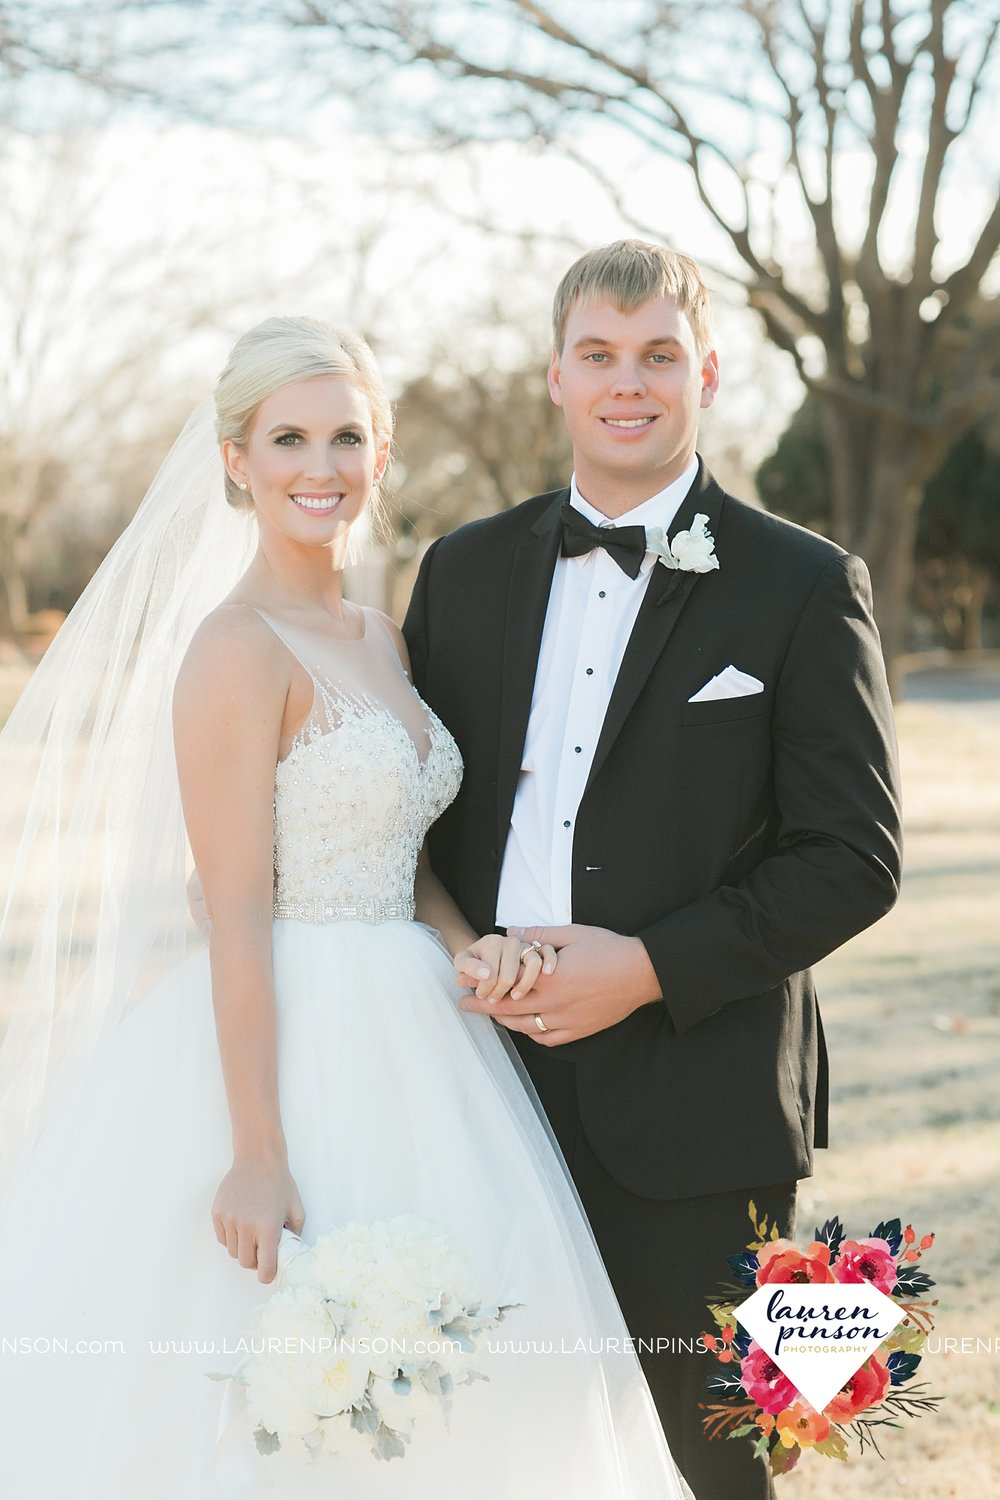 wichita-falls-texas-weddiing-photographer-the-wellingtong-two-clever-chicks-our-lady-queen-of-peace-winter-wedding-photography_4077.jpg